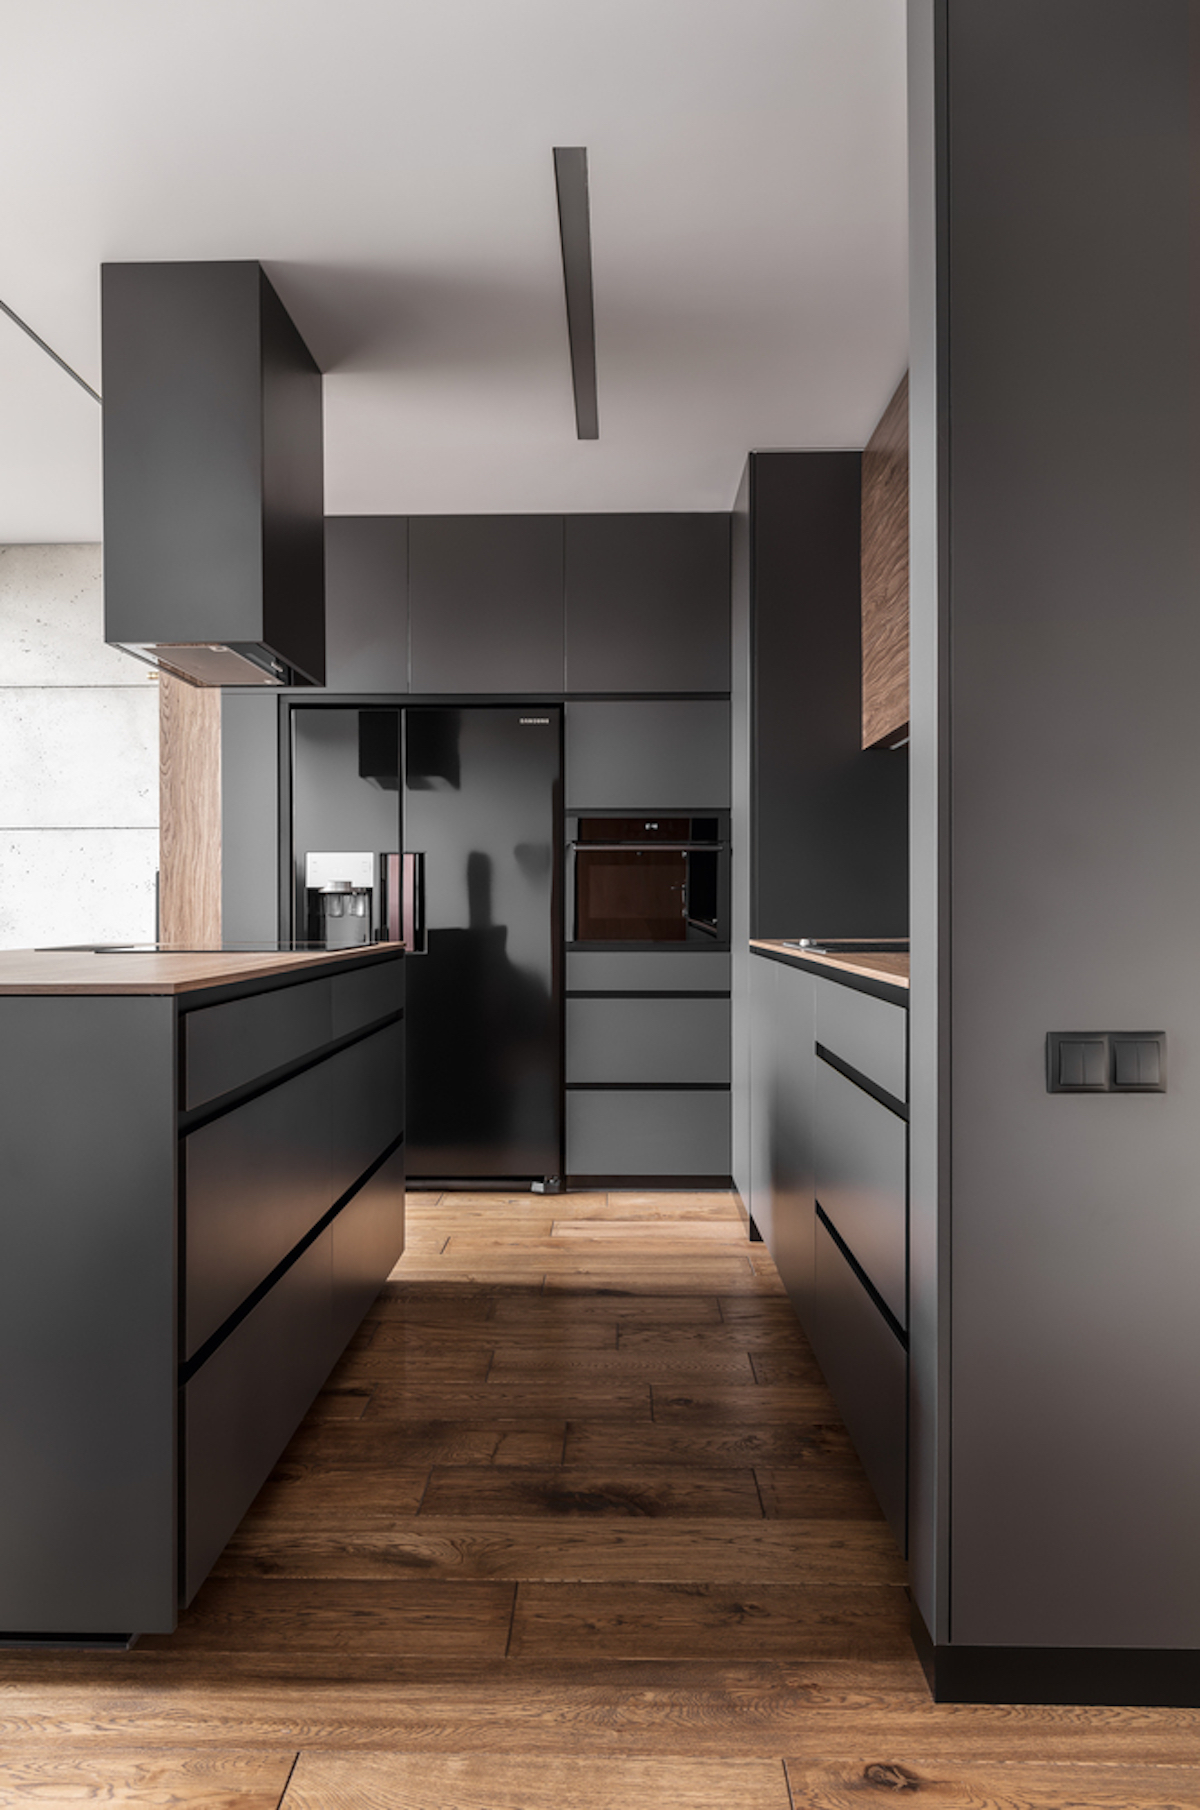 The kitchen has a simple, sober and masculine design, with minimalist lines and colors